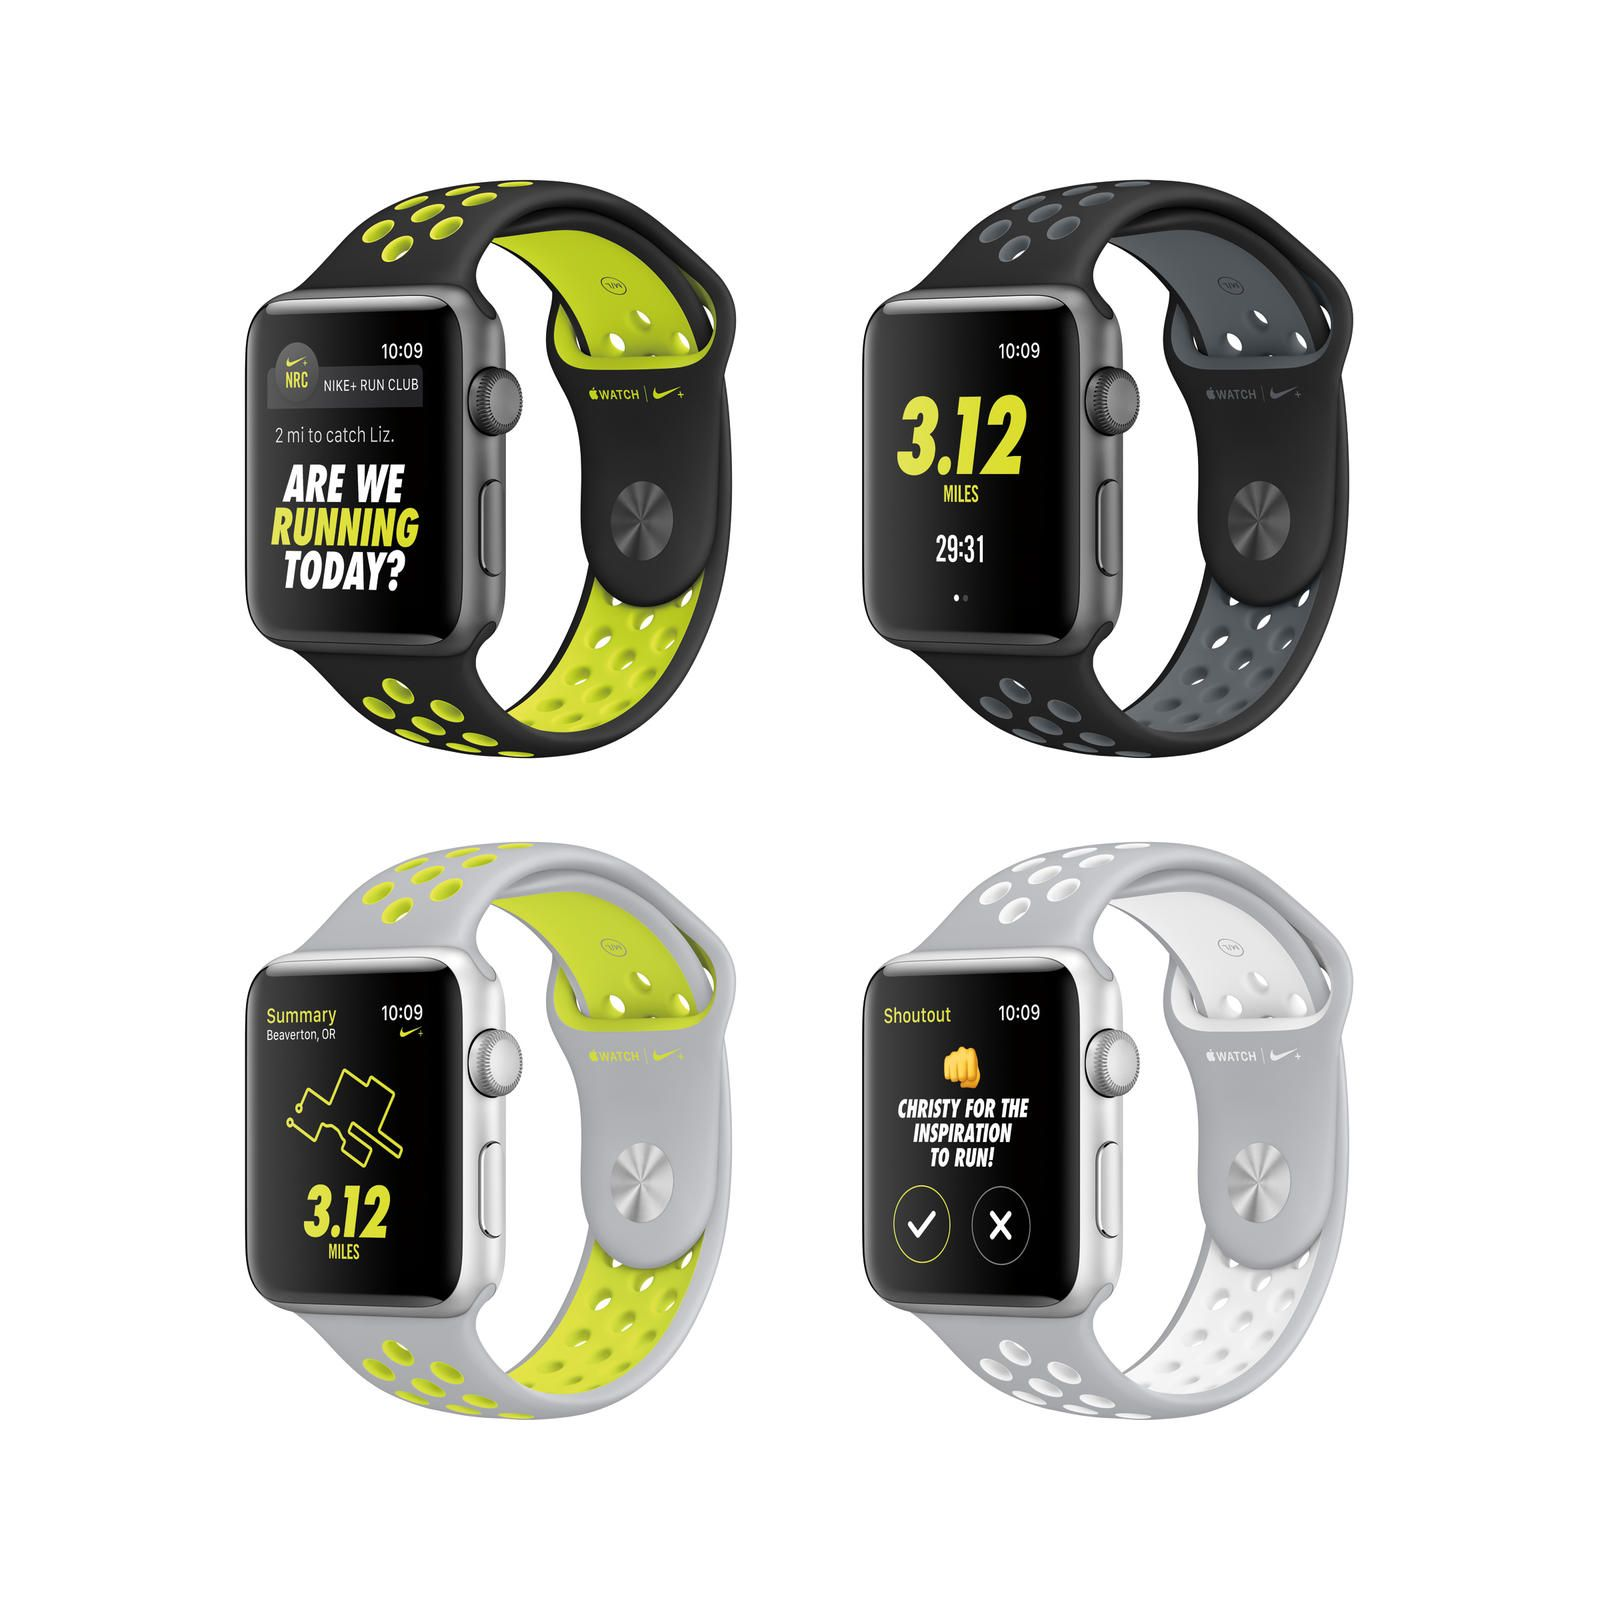 Apple-Watch-Series-2-Nike-03